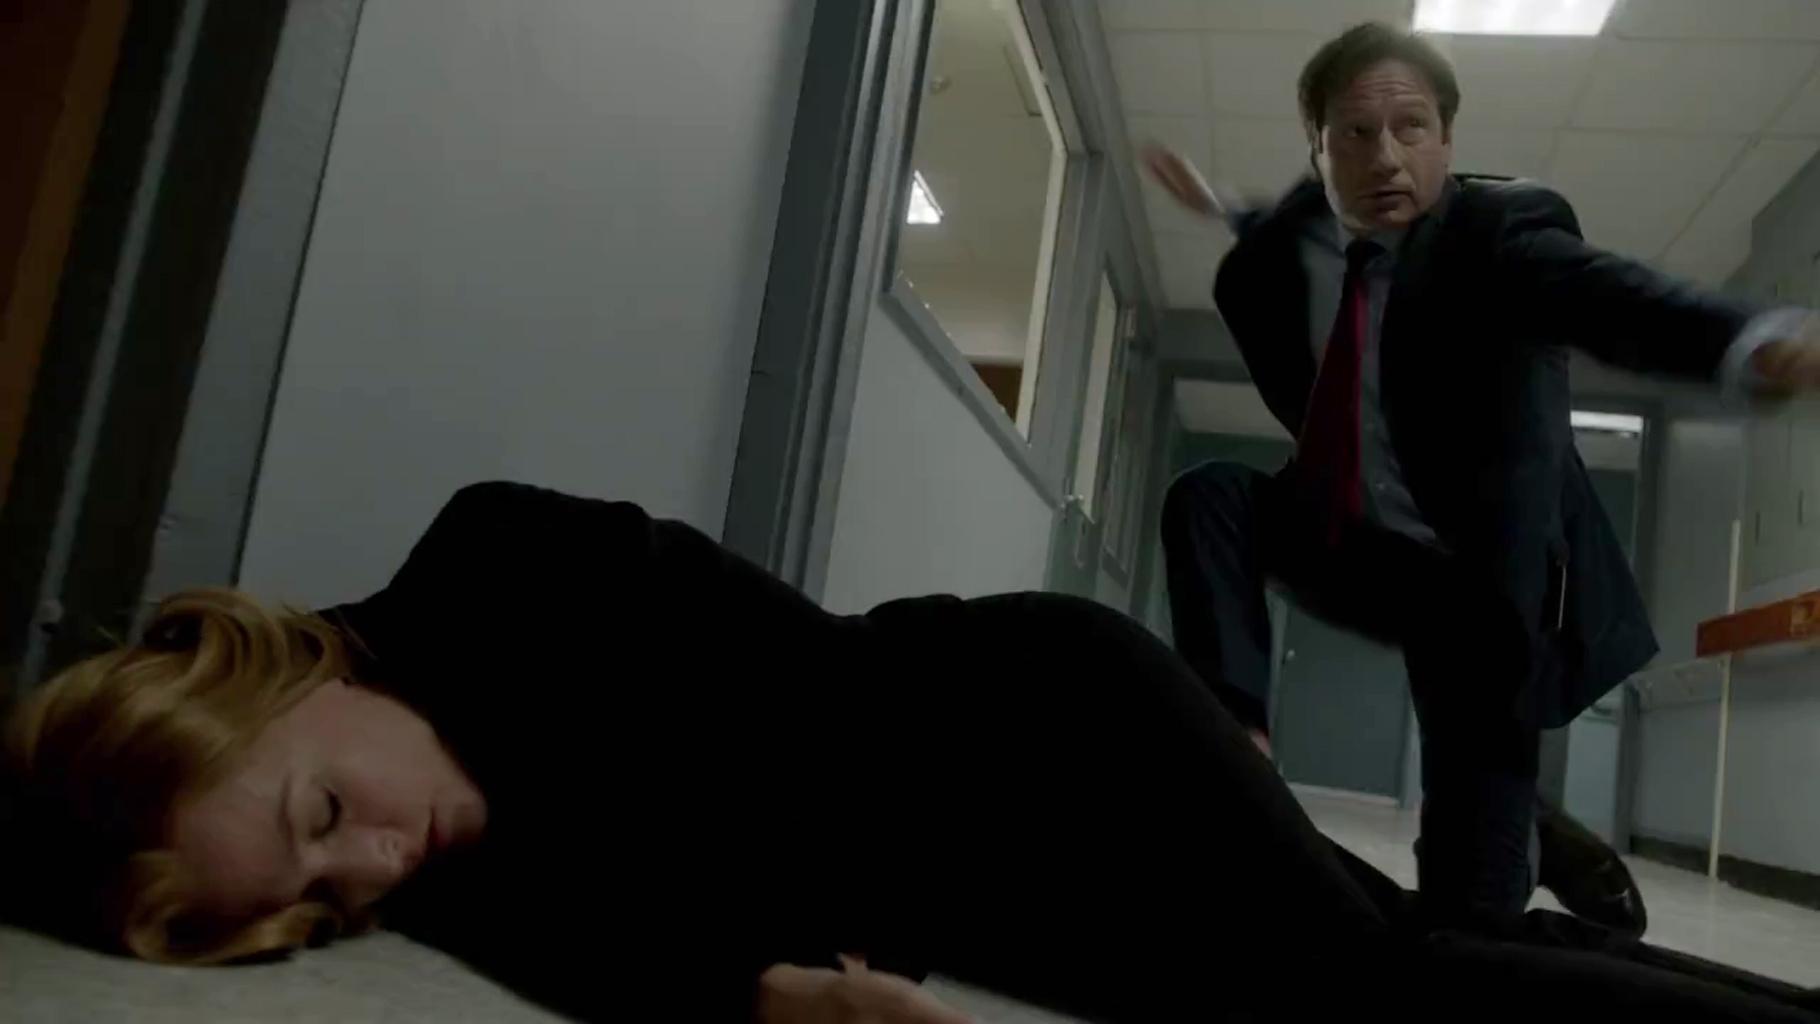 a focus on special agents fox mulder and dana scully in the story of the x files The x-files - season 5 : the series follow fbi special agents fox mulder and dana scully, who work on cases linked to the paranormal, called x-files mulder is a.